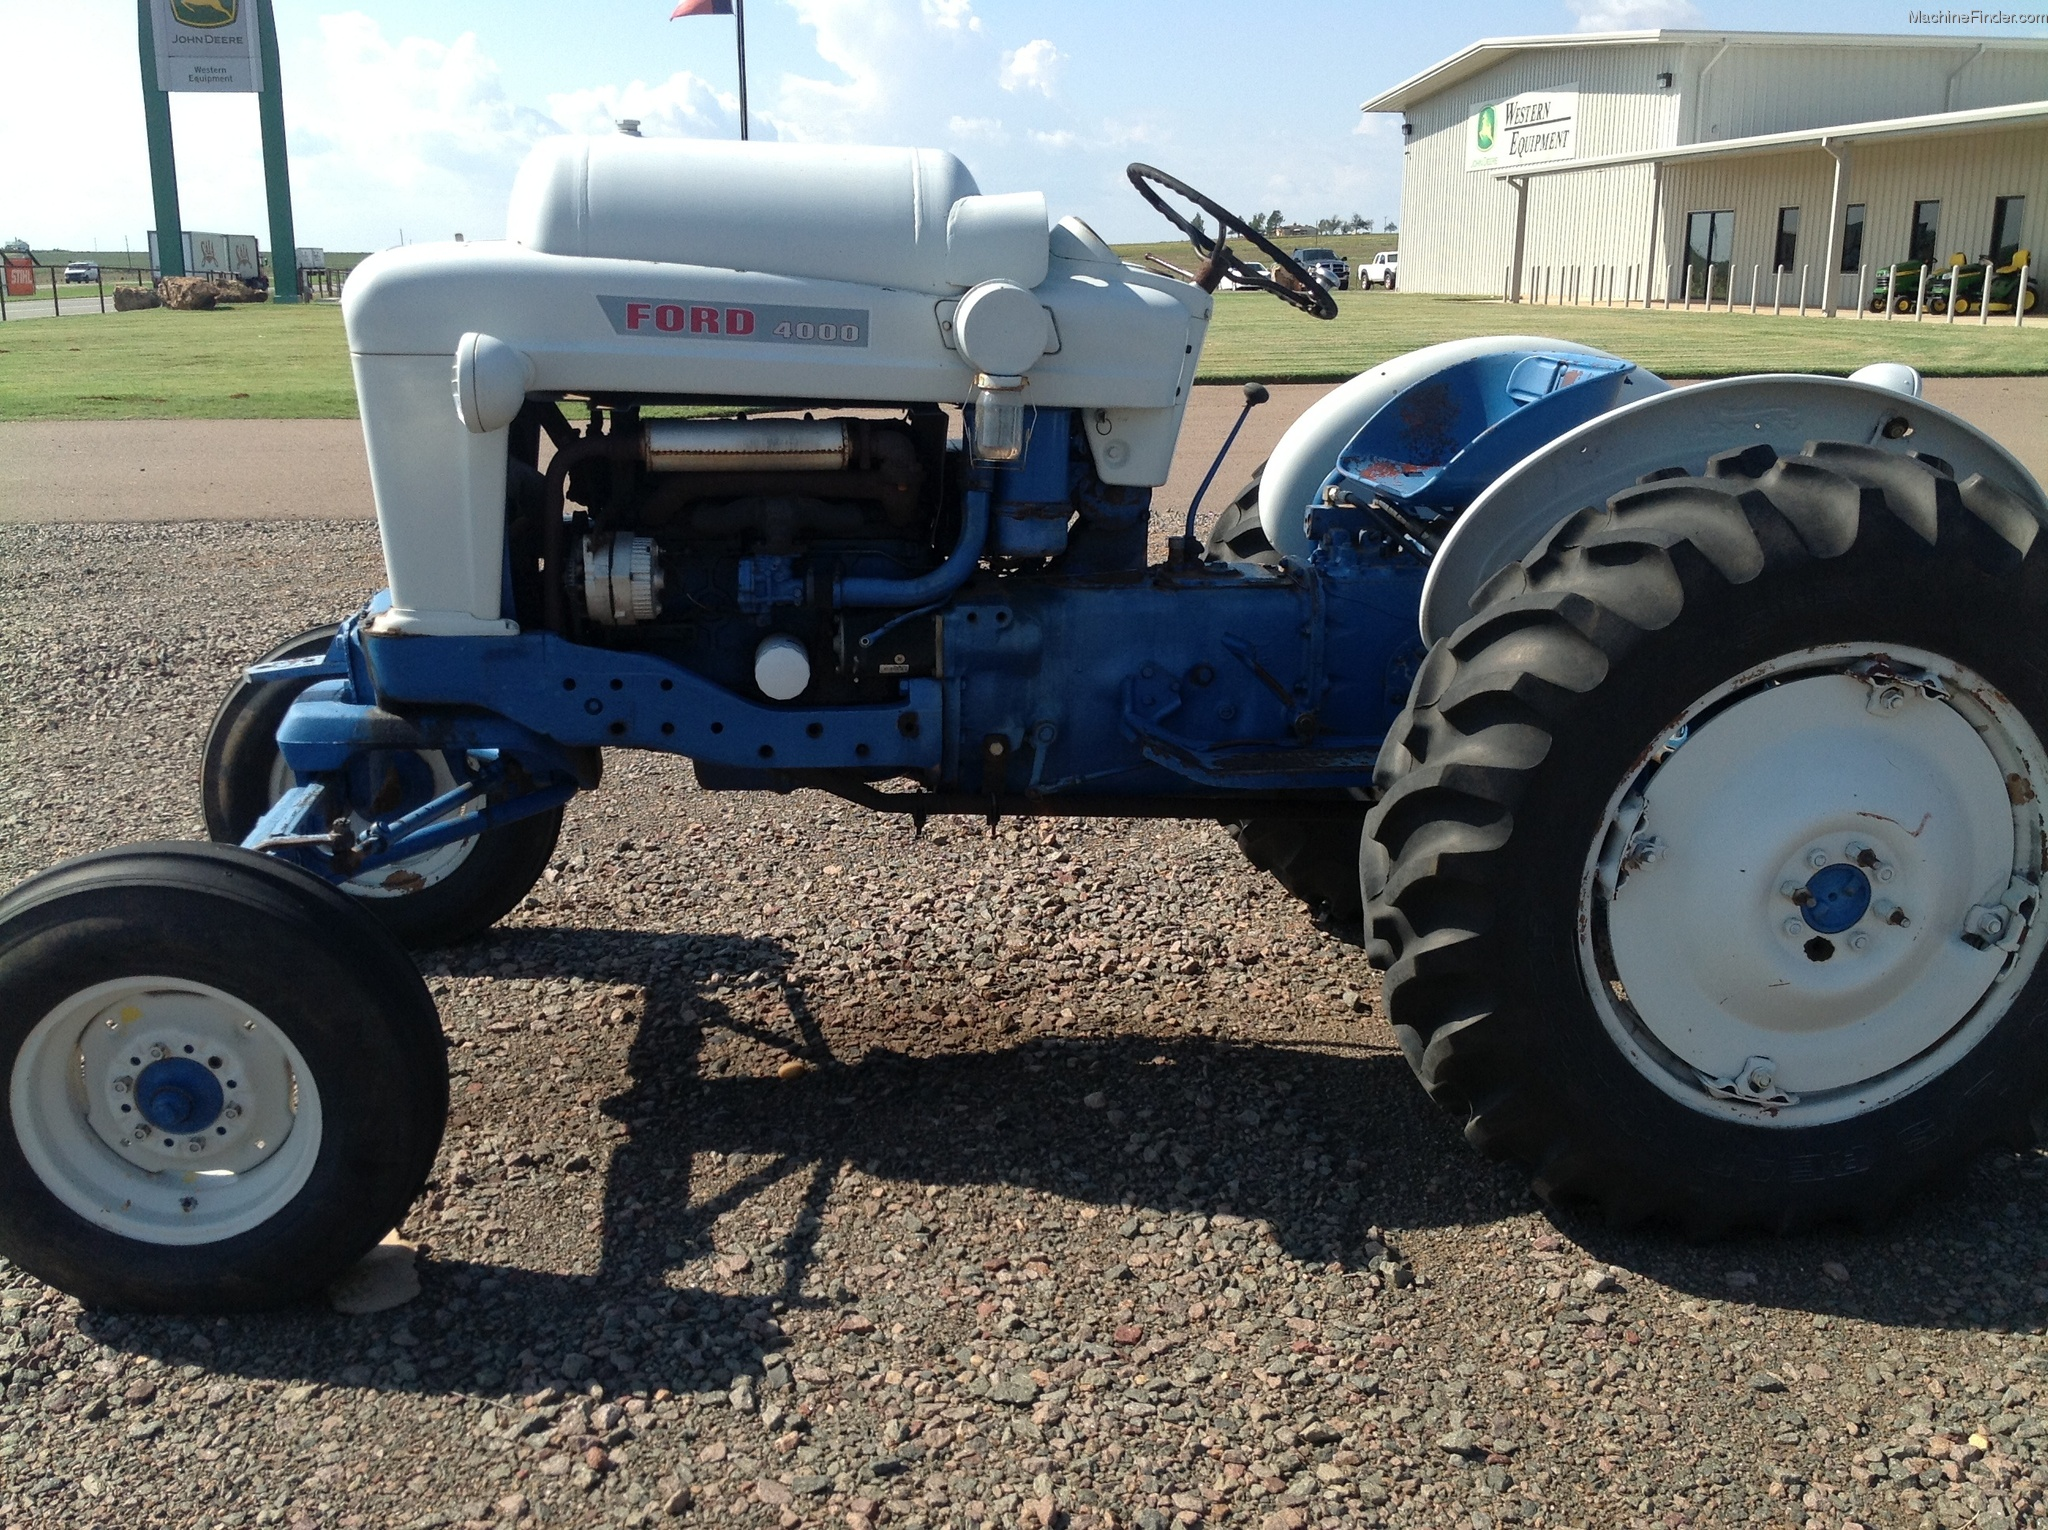 Ford 4000 Diesel Tractor Manual : Ford tractor data